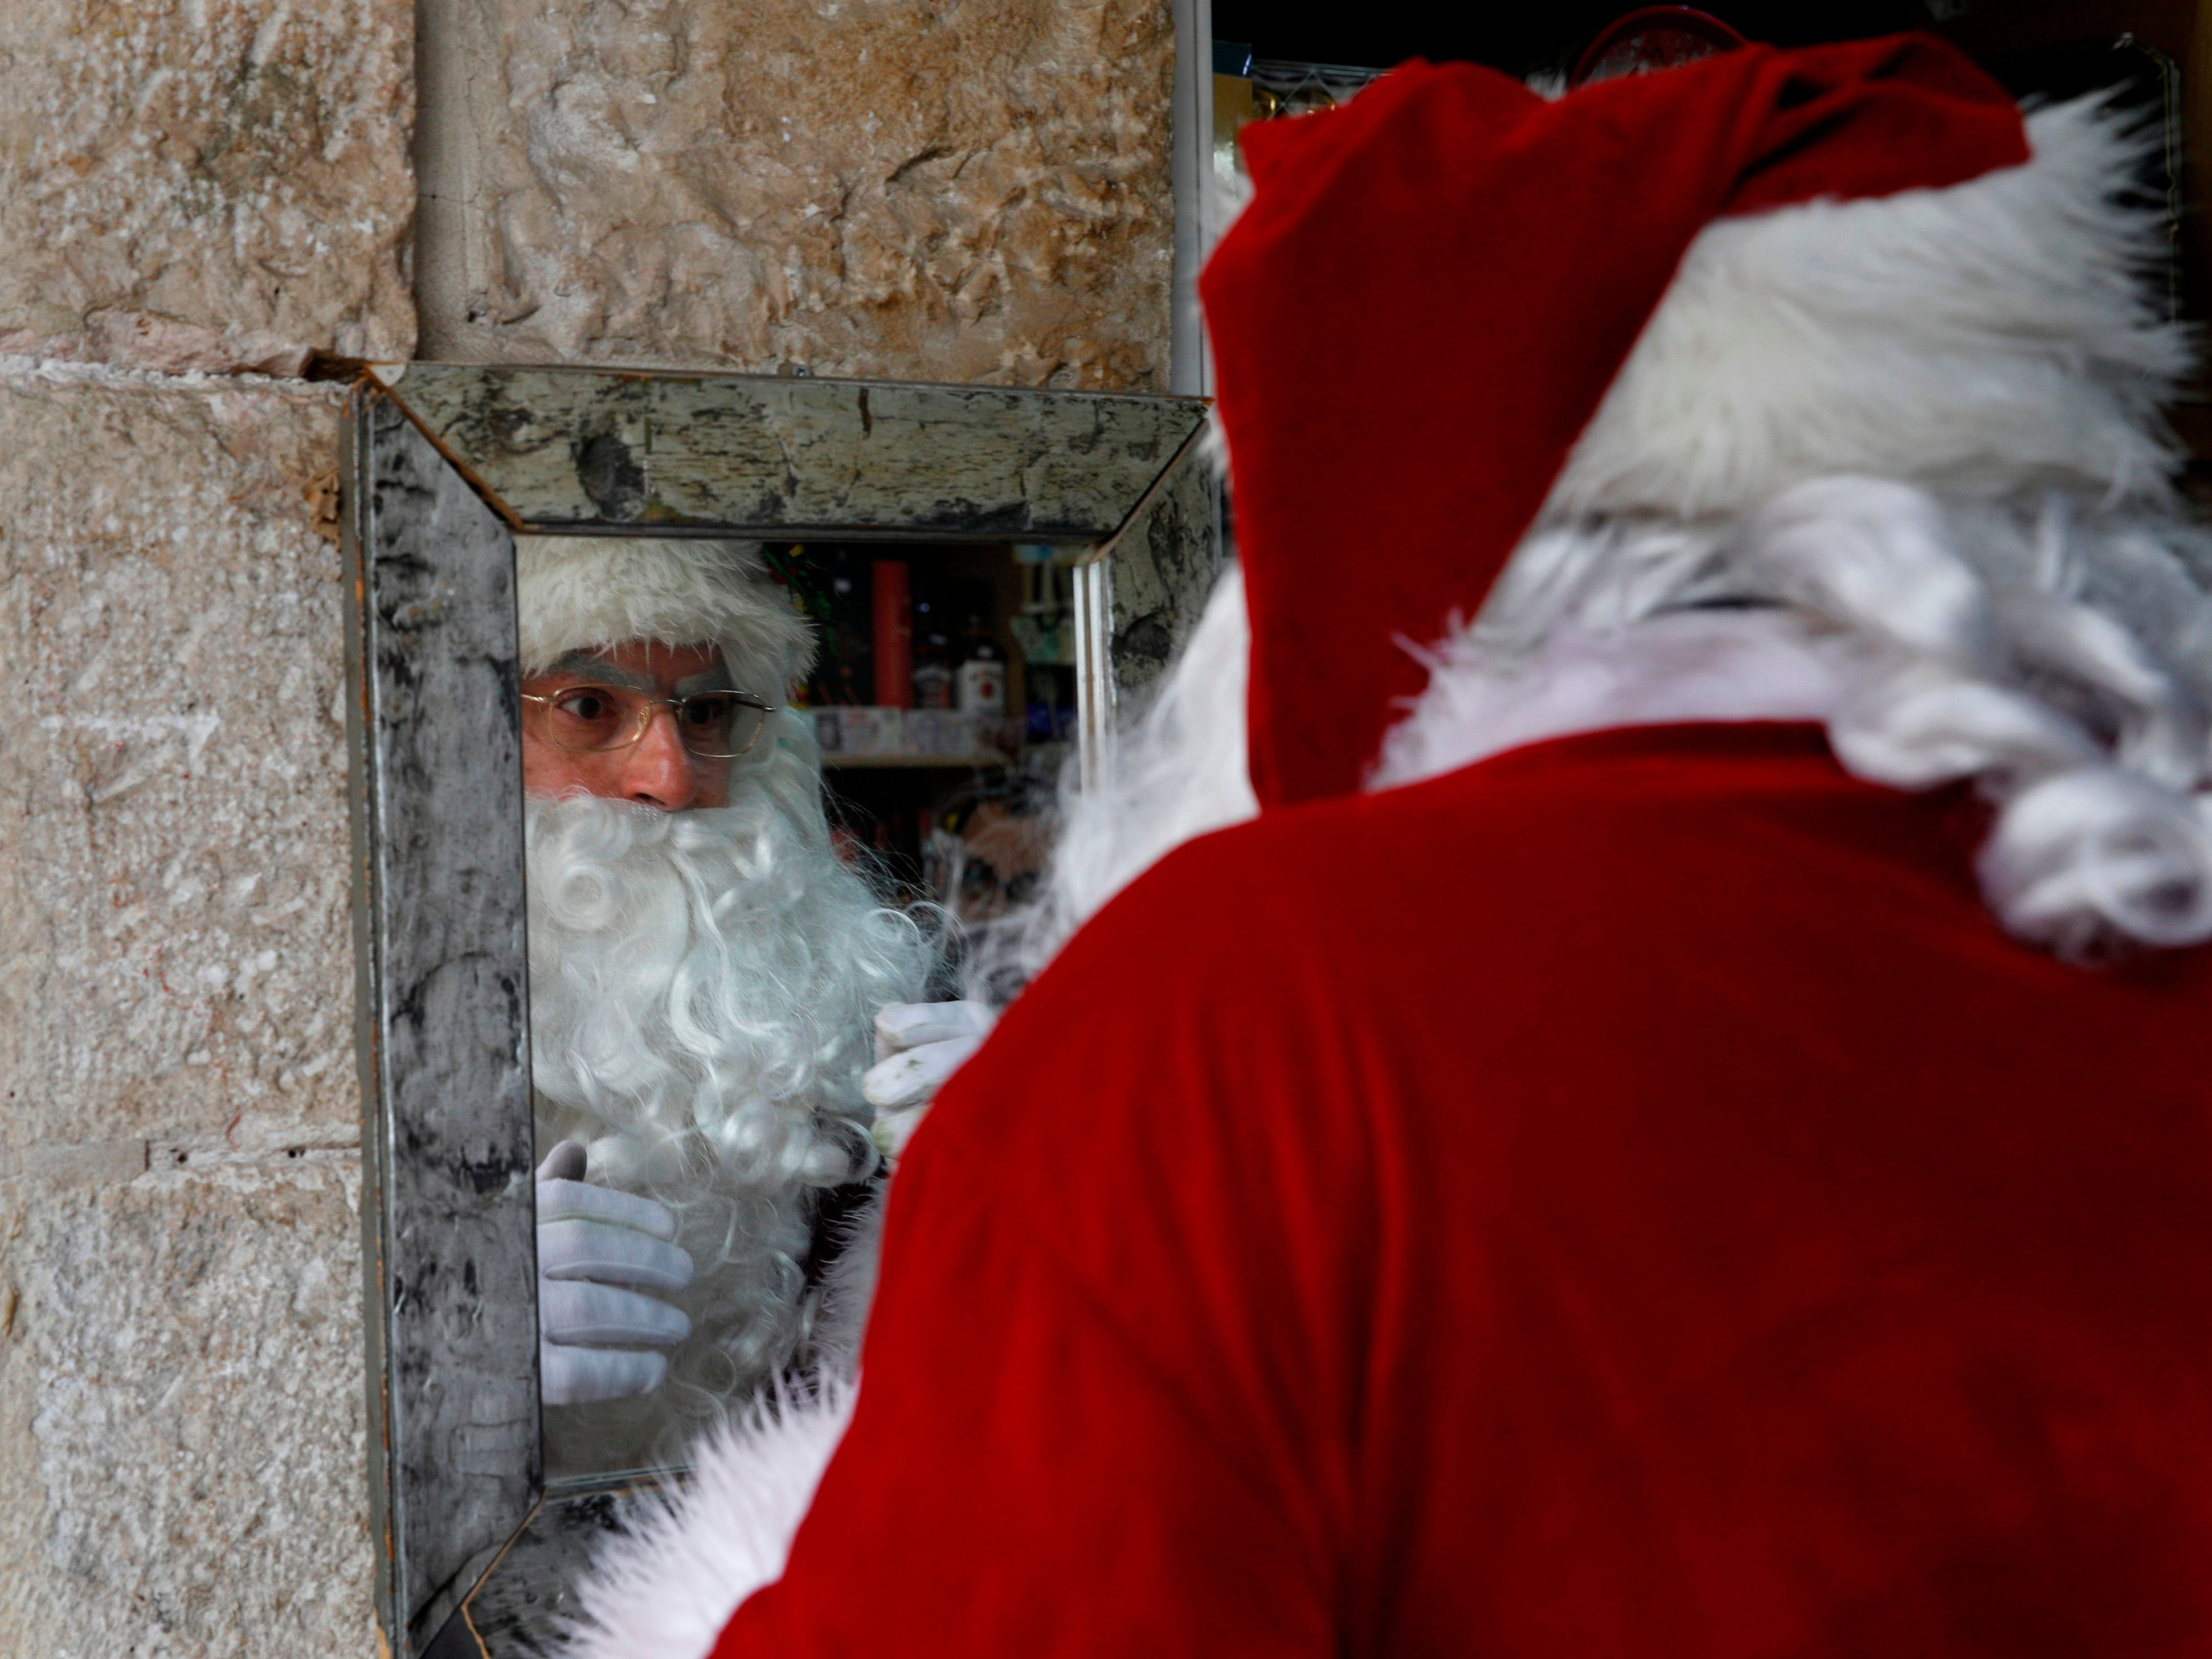 A man dressed as Santa Claus checks his look at a grocery store in Jerusalem's Old City on Dec. 20, 2018.